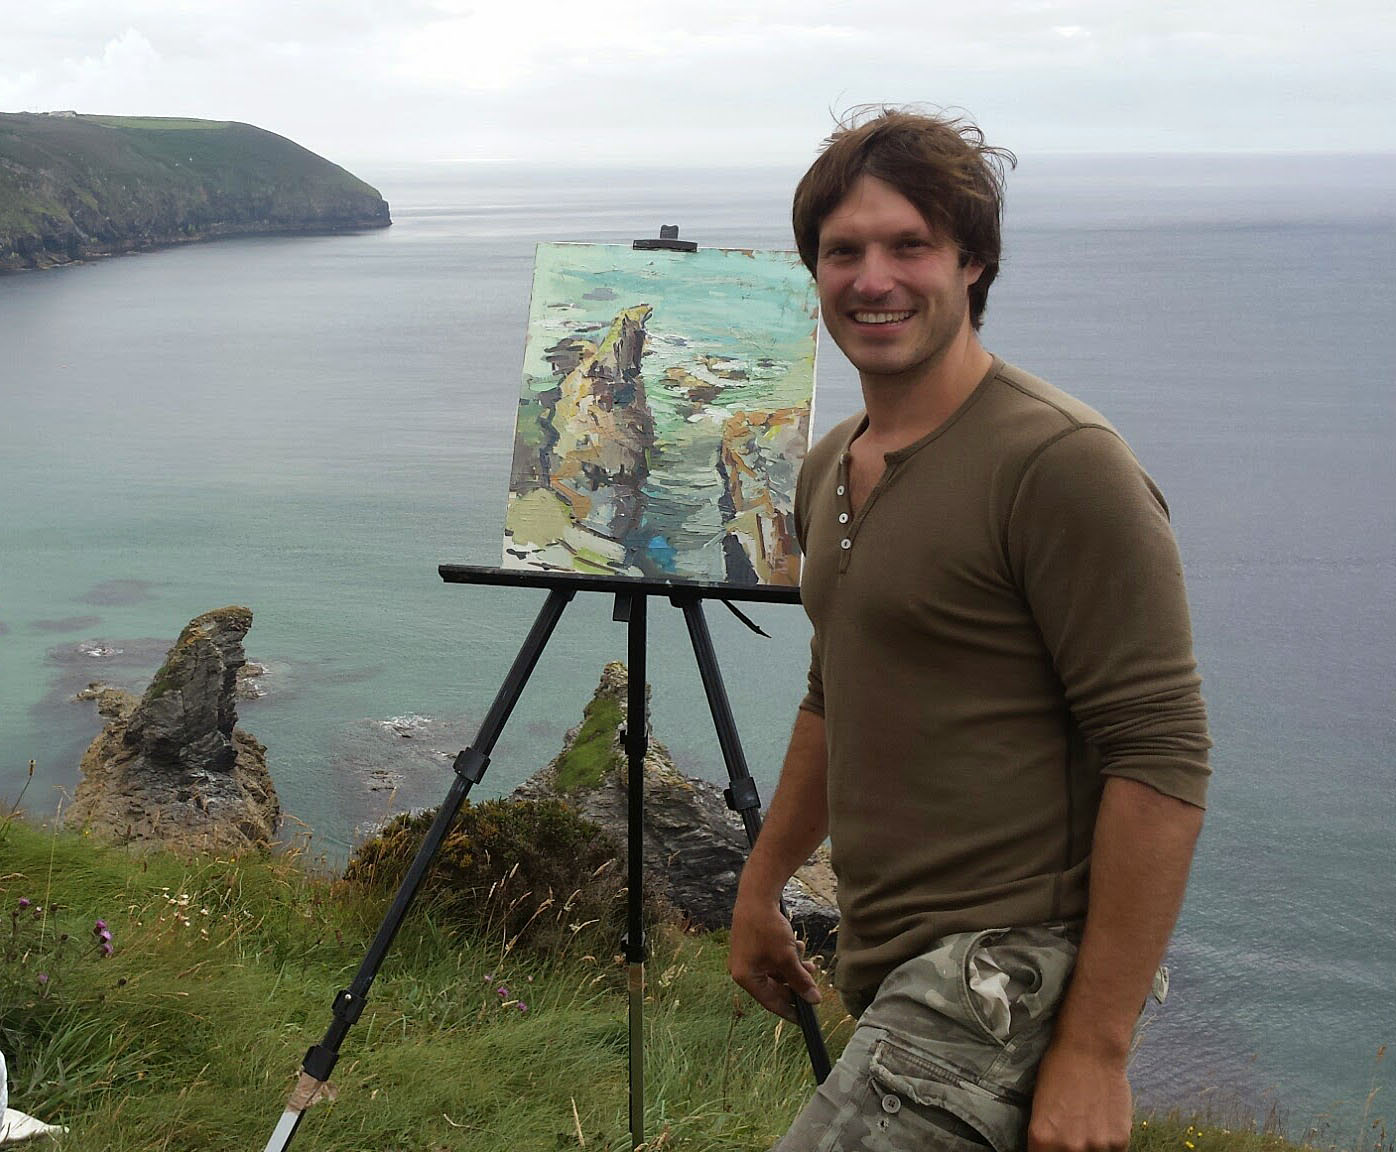 In Cornwall on the cliffs by St Agnes, painting an odd shaped rock